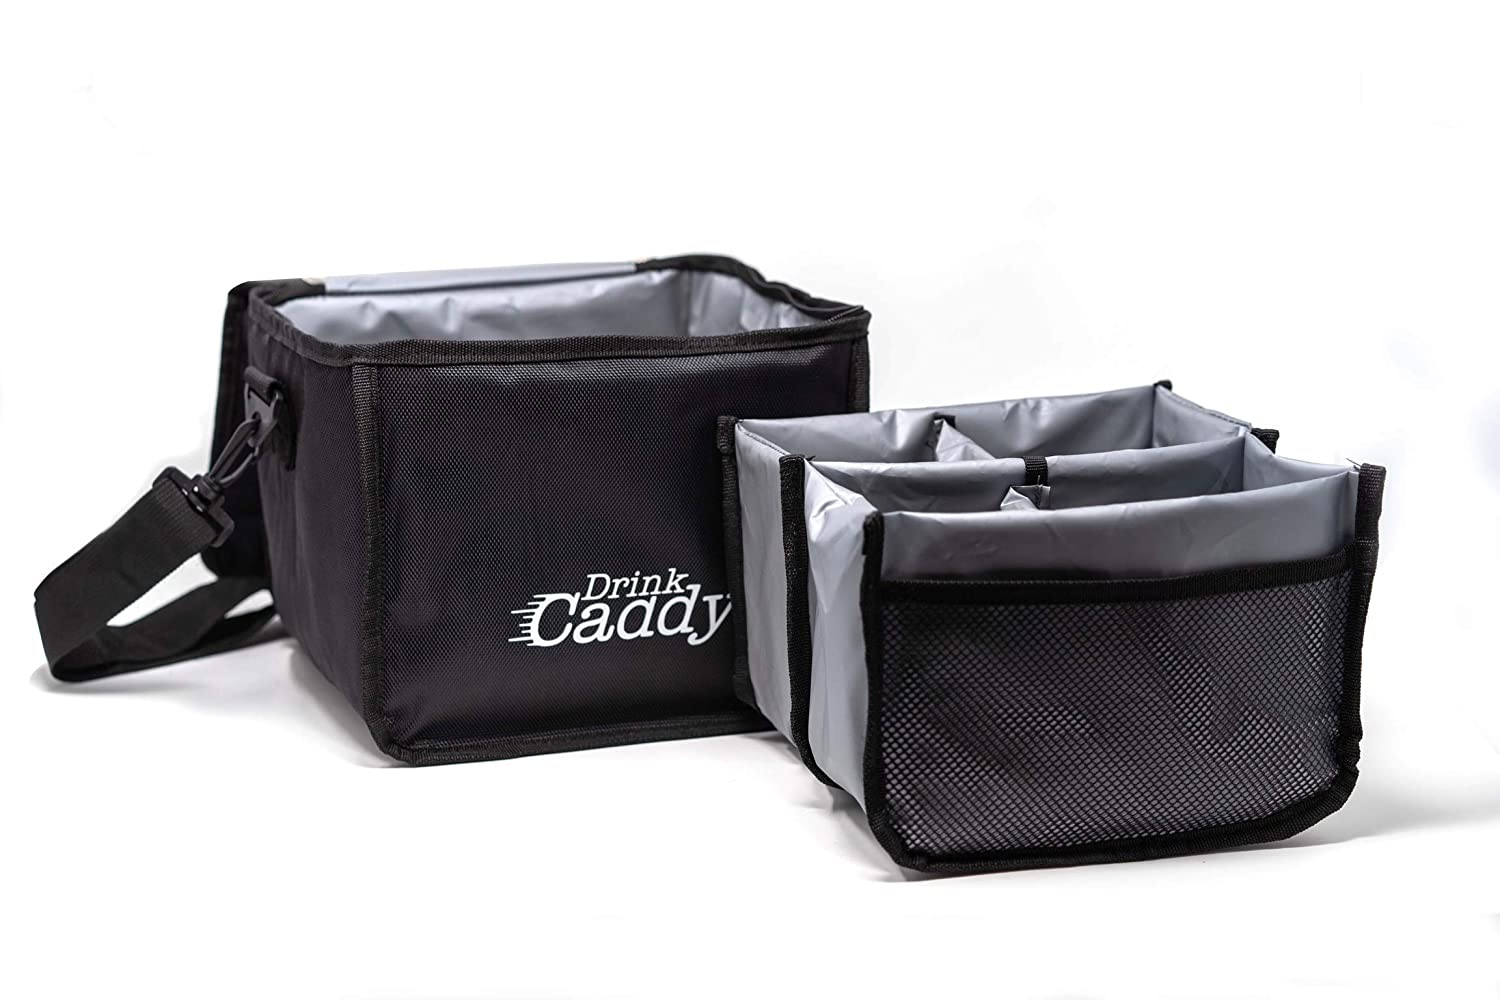 Drink Caddy Insulated Portable Drink Carrier - Reusable Coffee Cup Holder with Shoulder Straps Perfect for Food Delivery and Takeout - Easily Secures 4 Hot or Cold Beverages with Fold Over Closure.